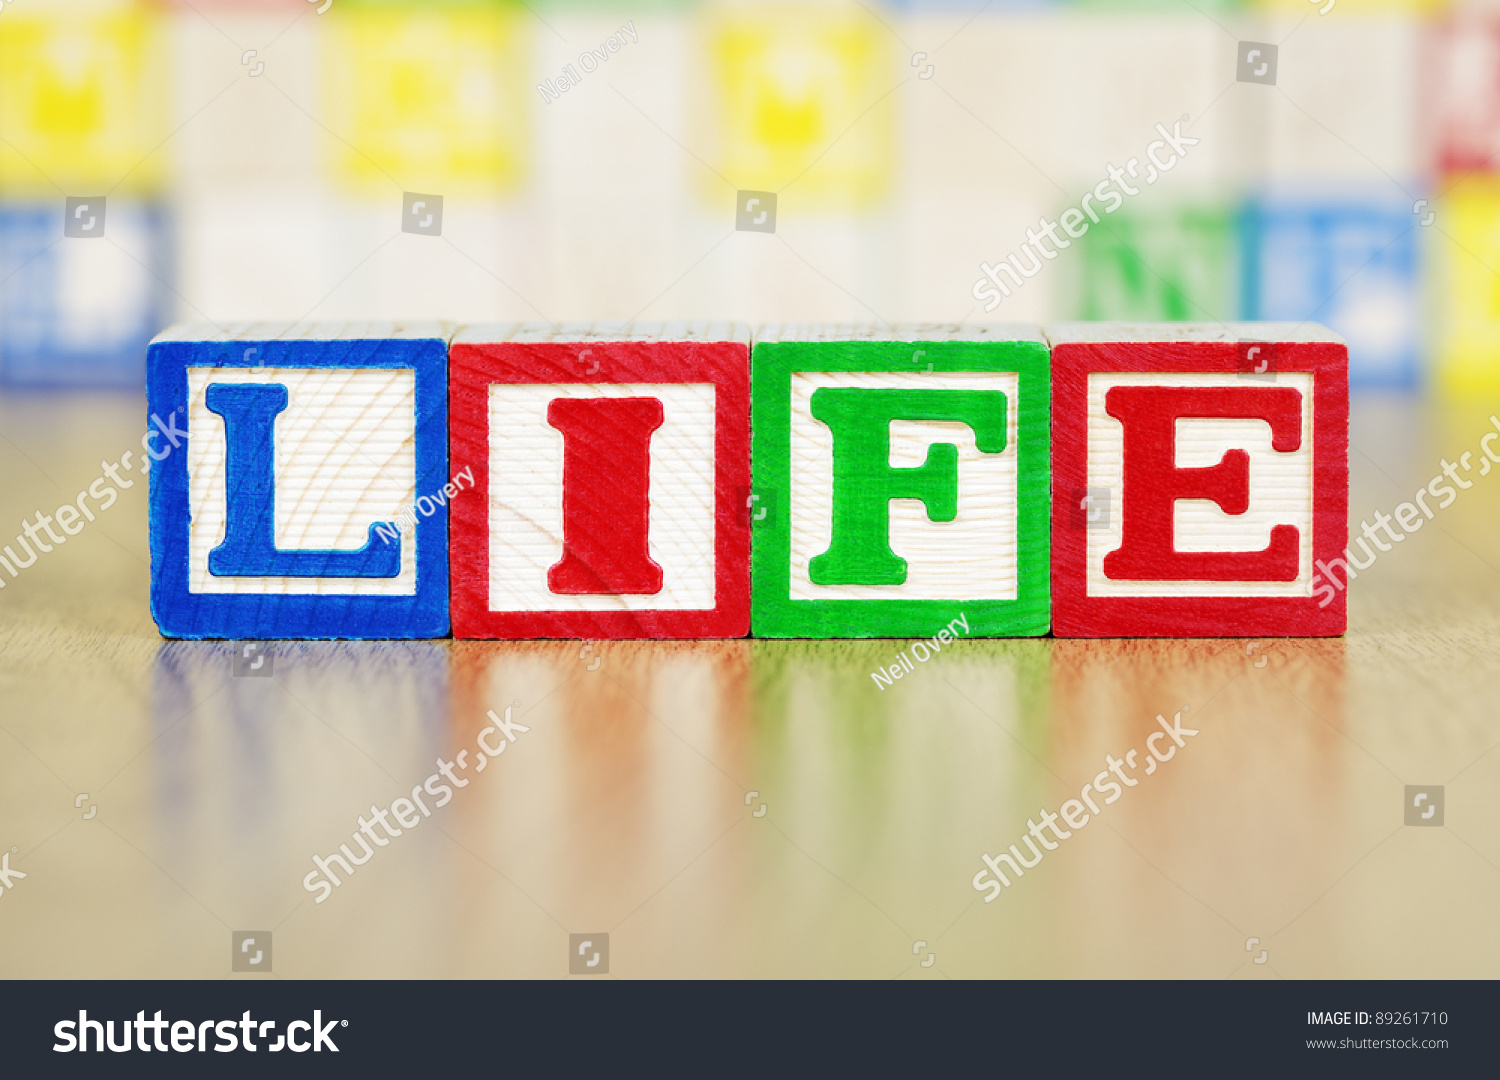 Life Spelled In Cobble : Life spelled out in alphabet building blocks stock photo